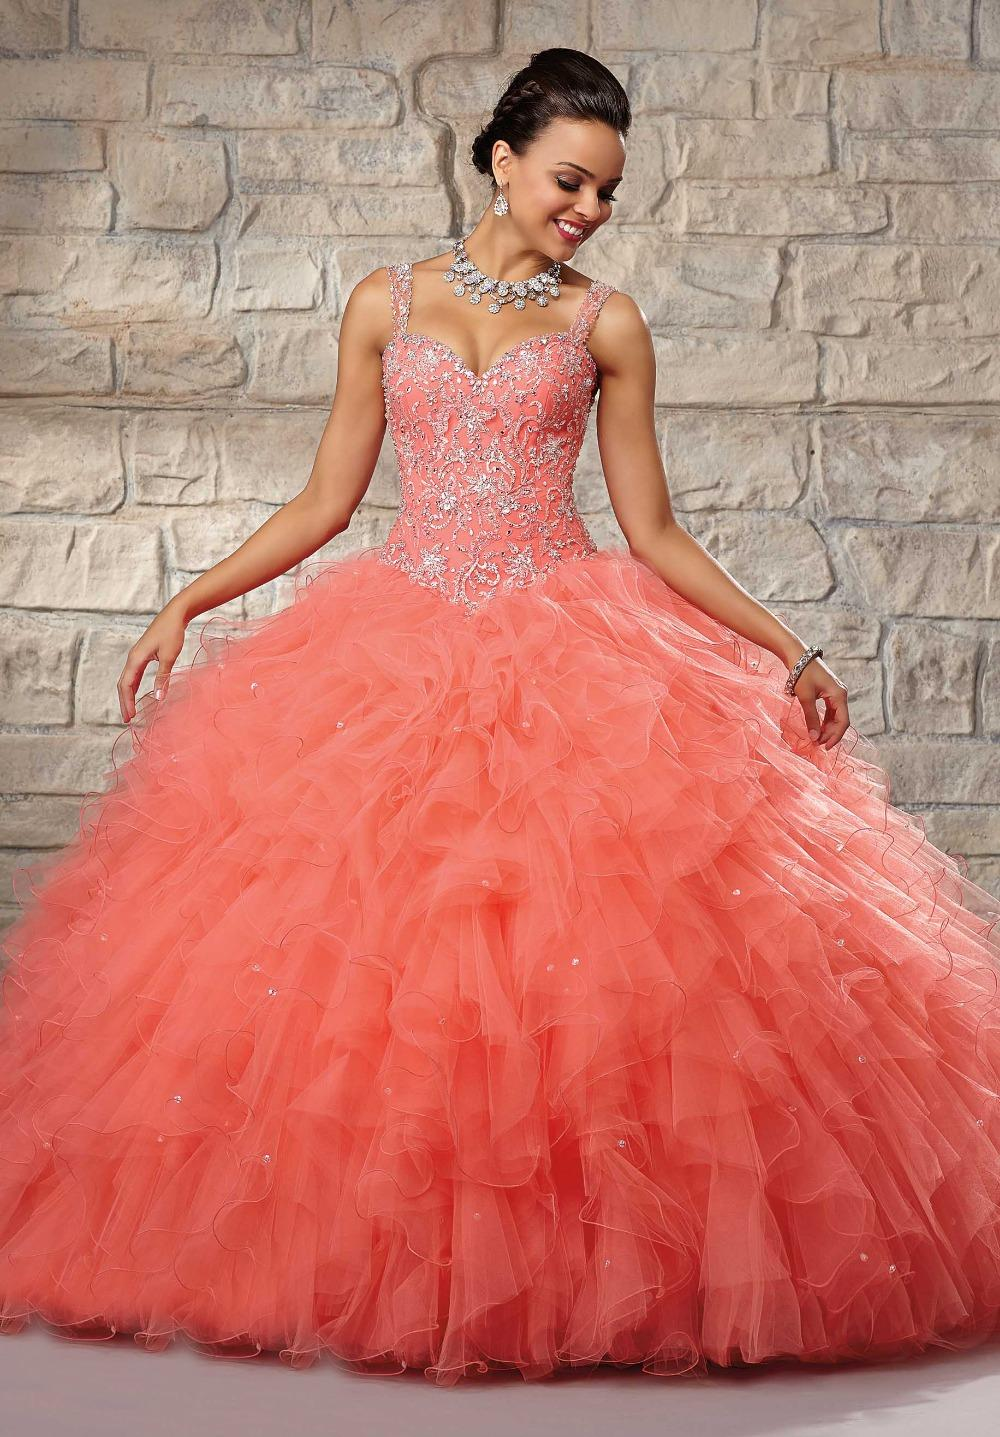 New Arrival Rhinestone Bodice Ball Gown Organza Hot Pink Wedding Dressin Dresses From Weddings Events On Aliexpress Alibaba Group: Salmon Pink Wedding Dress At Websimilar.org